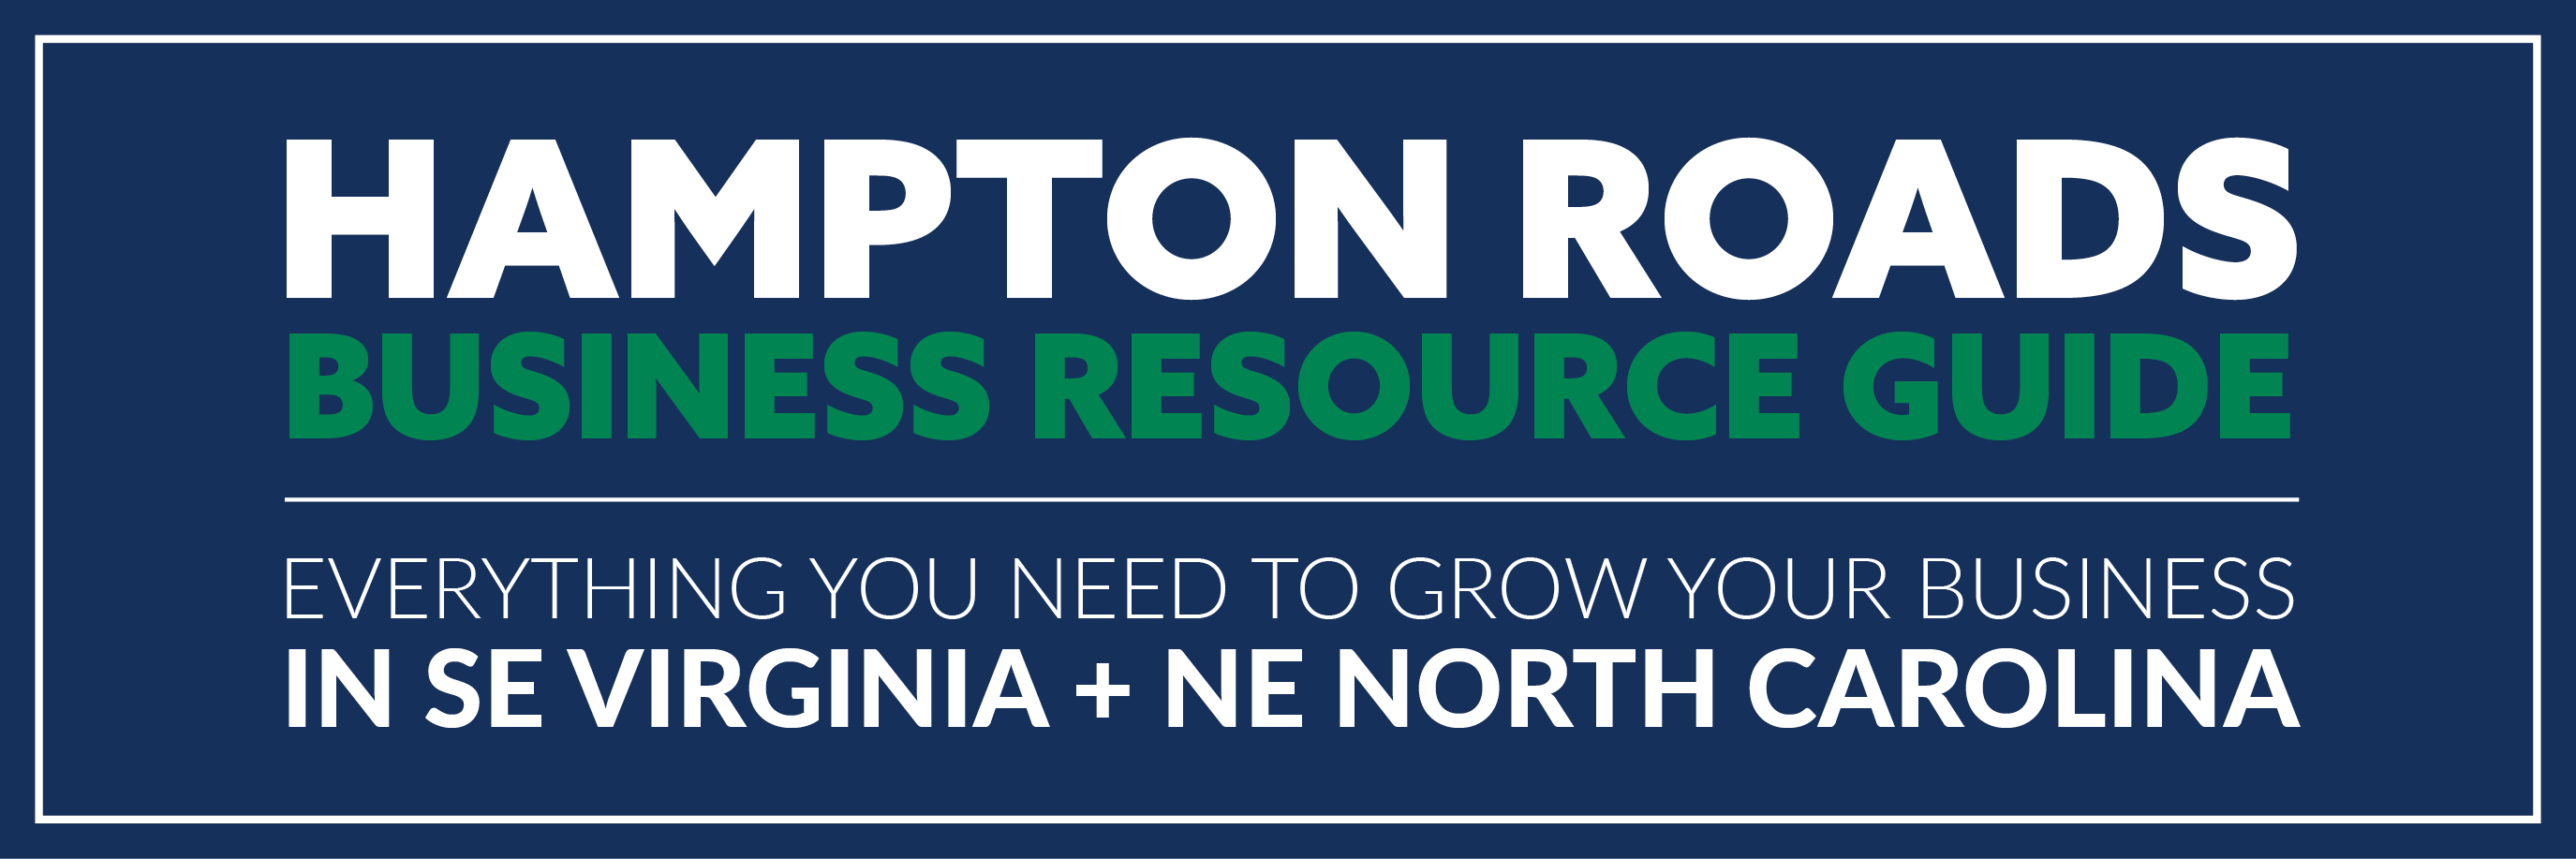 2020 Hampton Roads Business Resource Guide 001